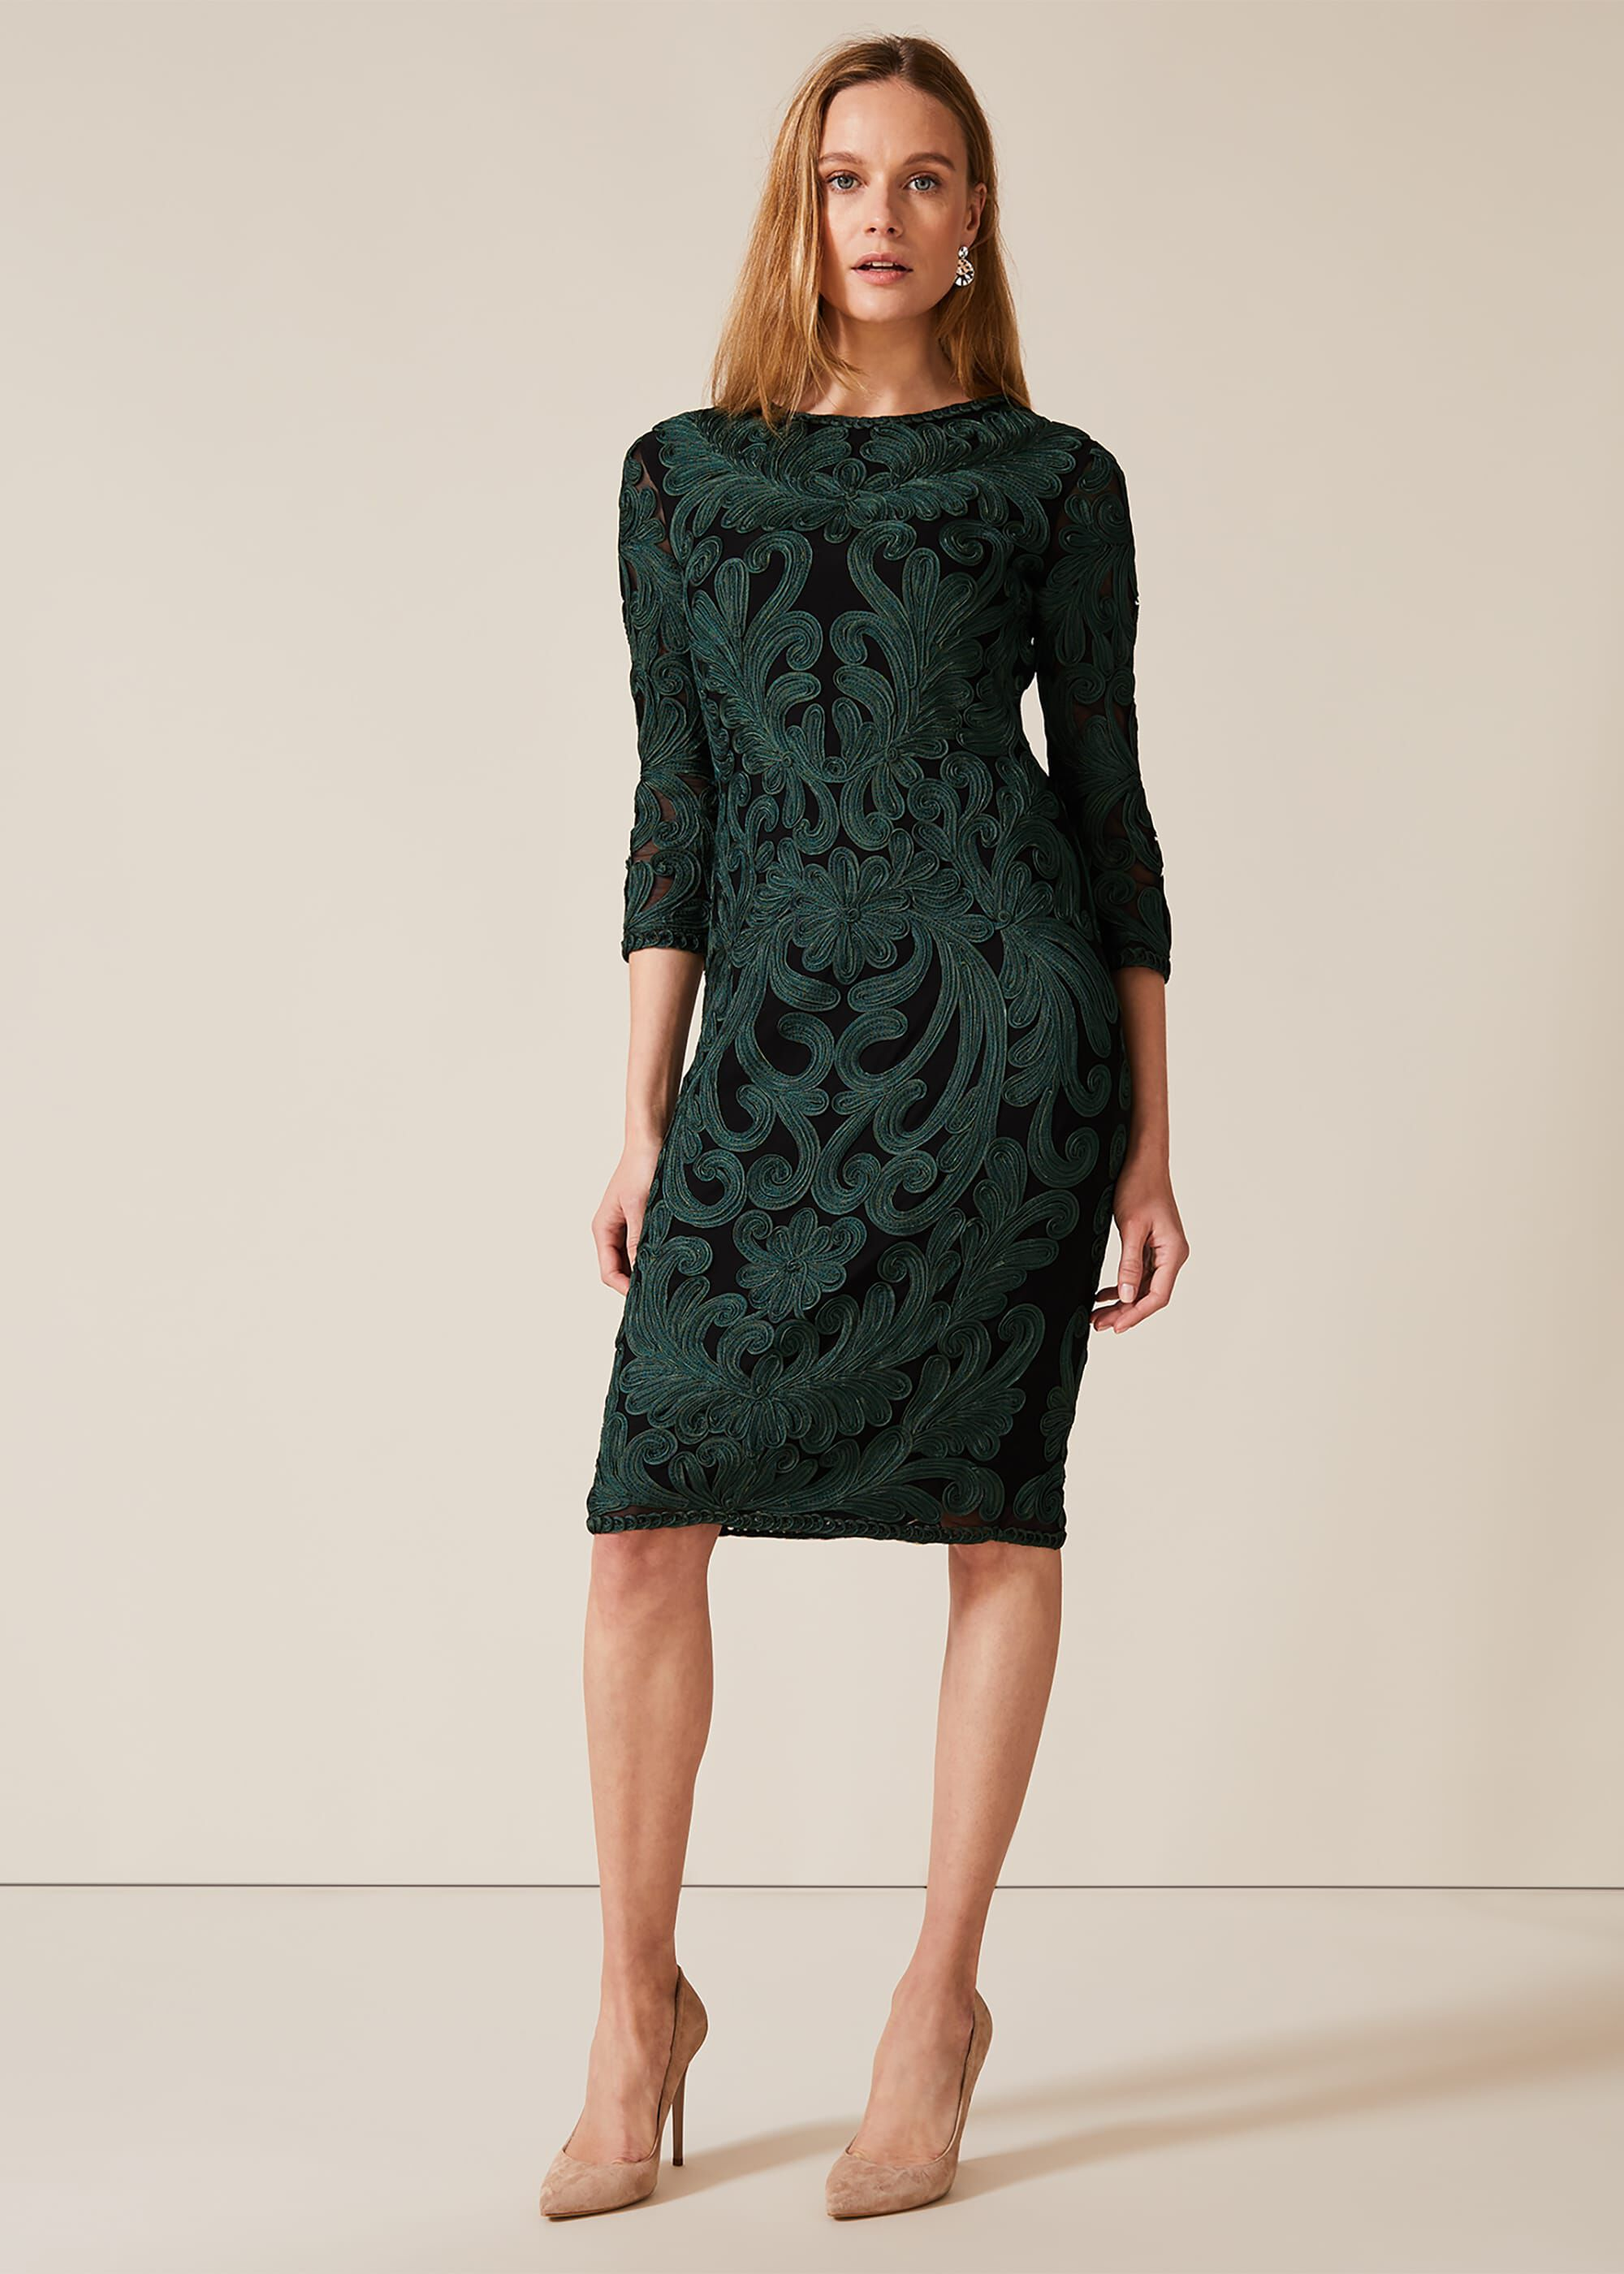 Phase Eight Benita Sleeved Tapework Dress, Black, Fitted, Occasion Dress